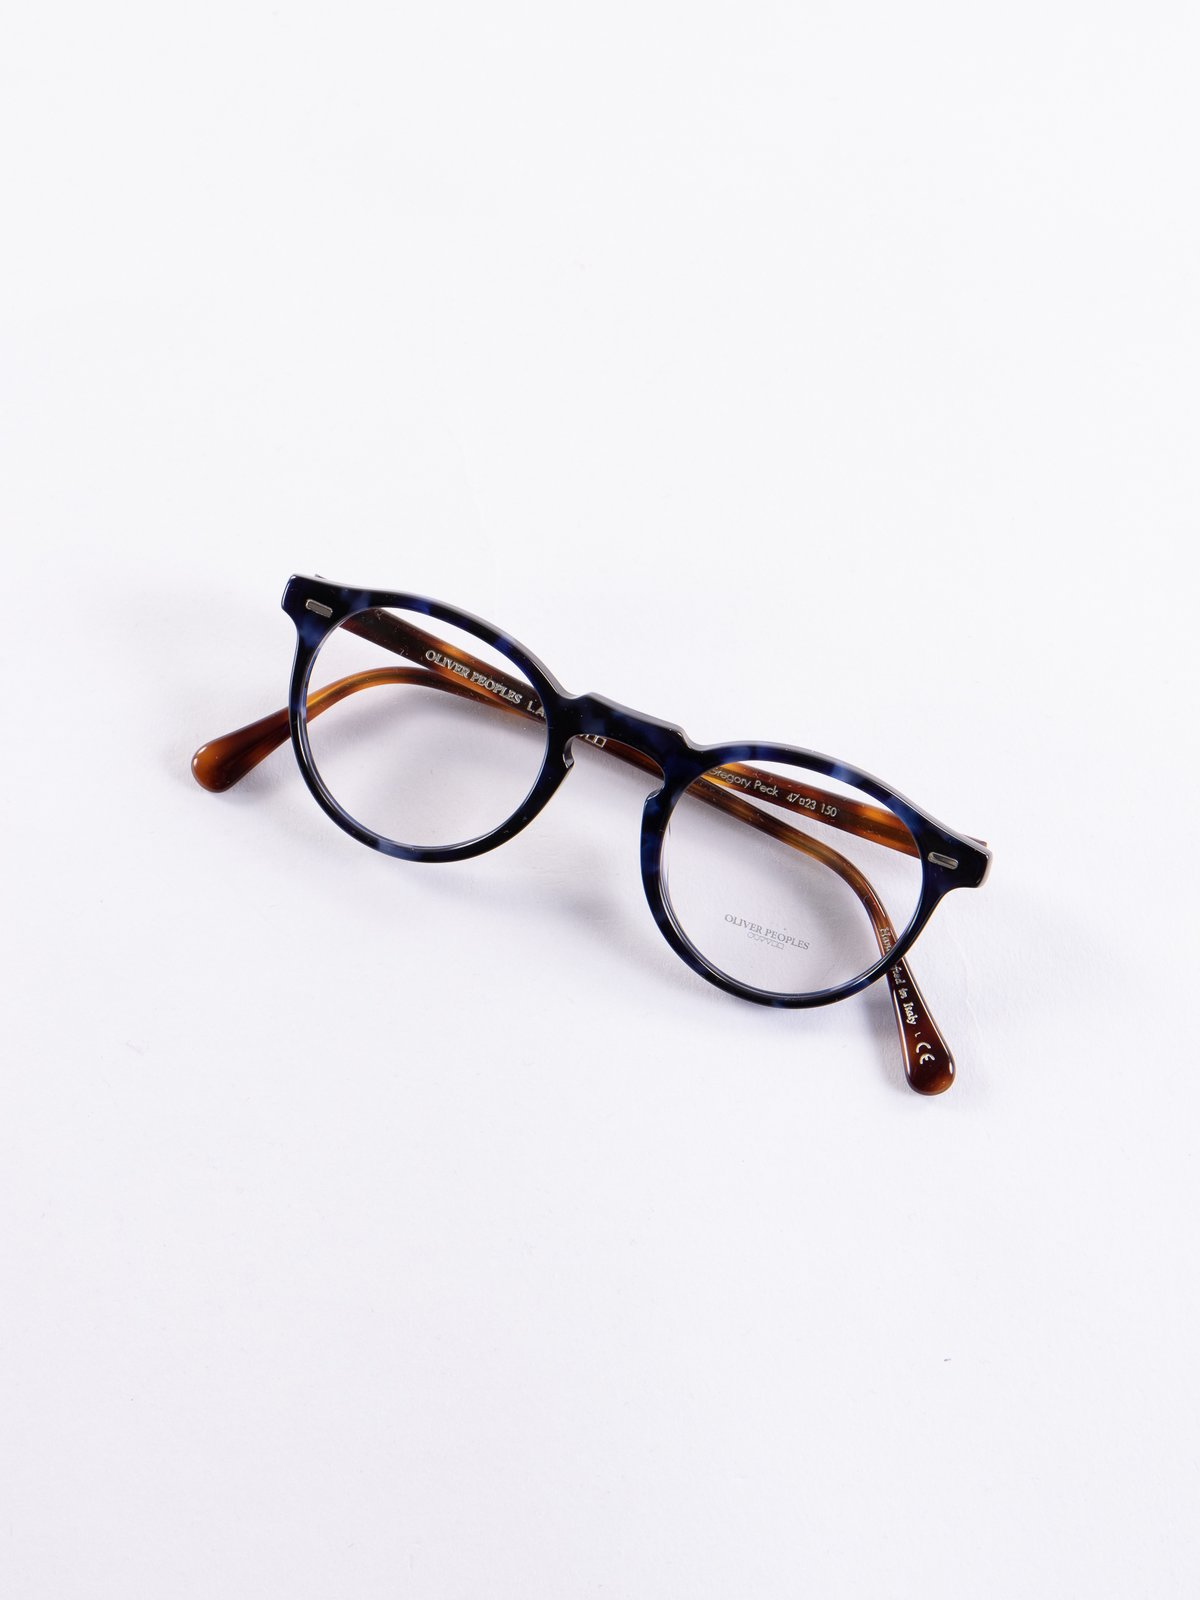 be6082b9c7b Cobalt Tortoise Gregory Peck Optical Frame by Oliver Peoples – The ...